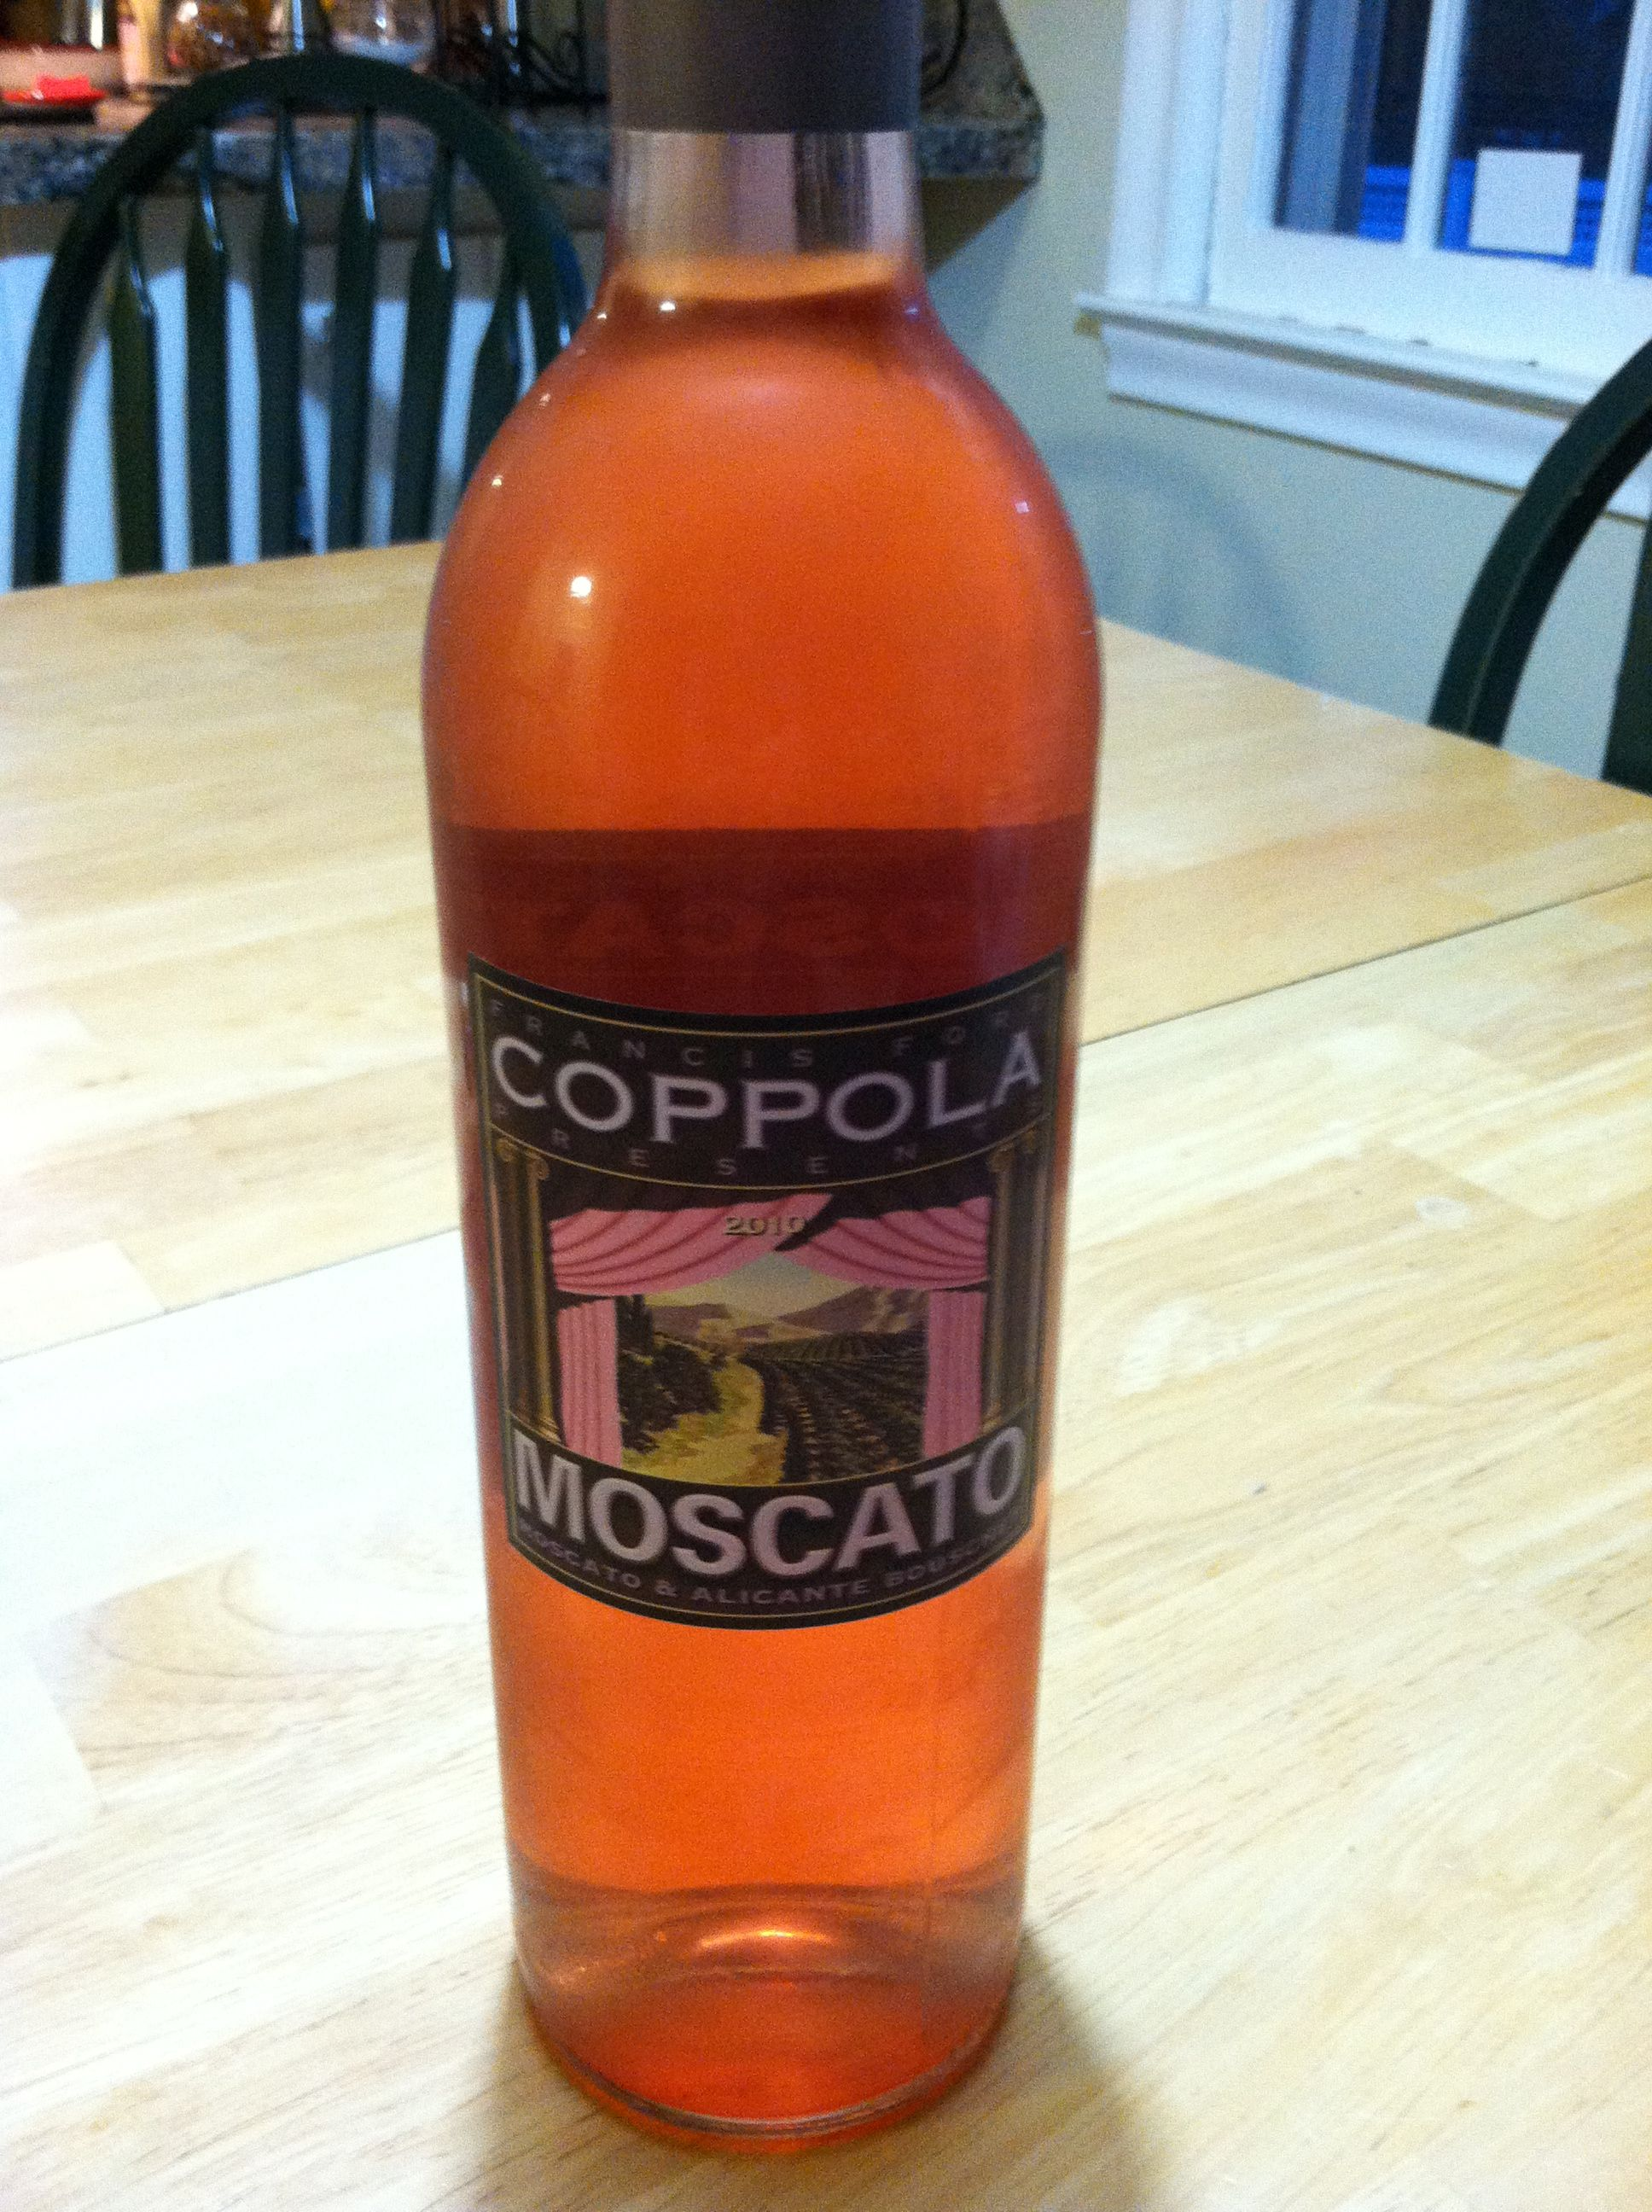 Coppola Moscato Highly Fragrant And Lusciously Fruity Akin To Drinking A Light Fluffy Apricot Cloud Followed By Light Sweet Wine Fruity Alcoholic Drinks